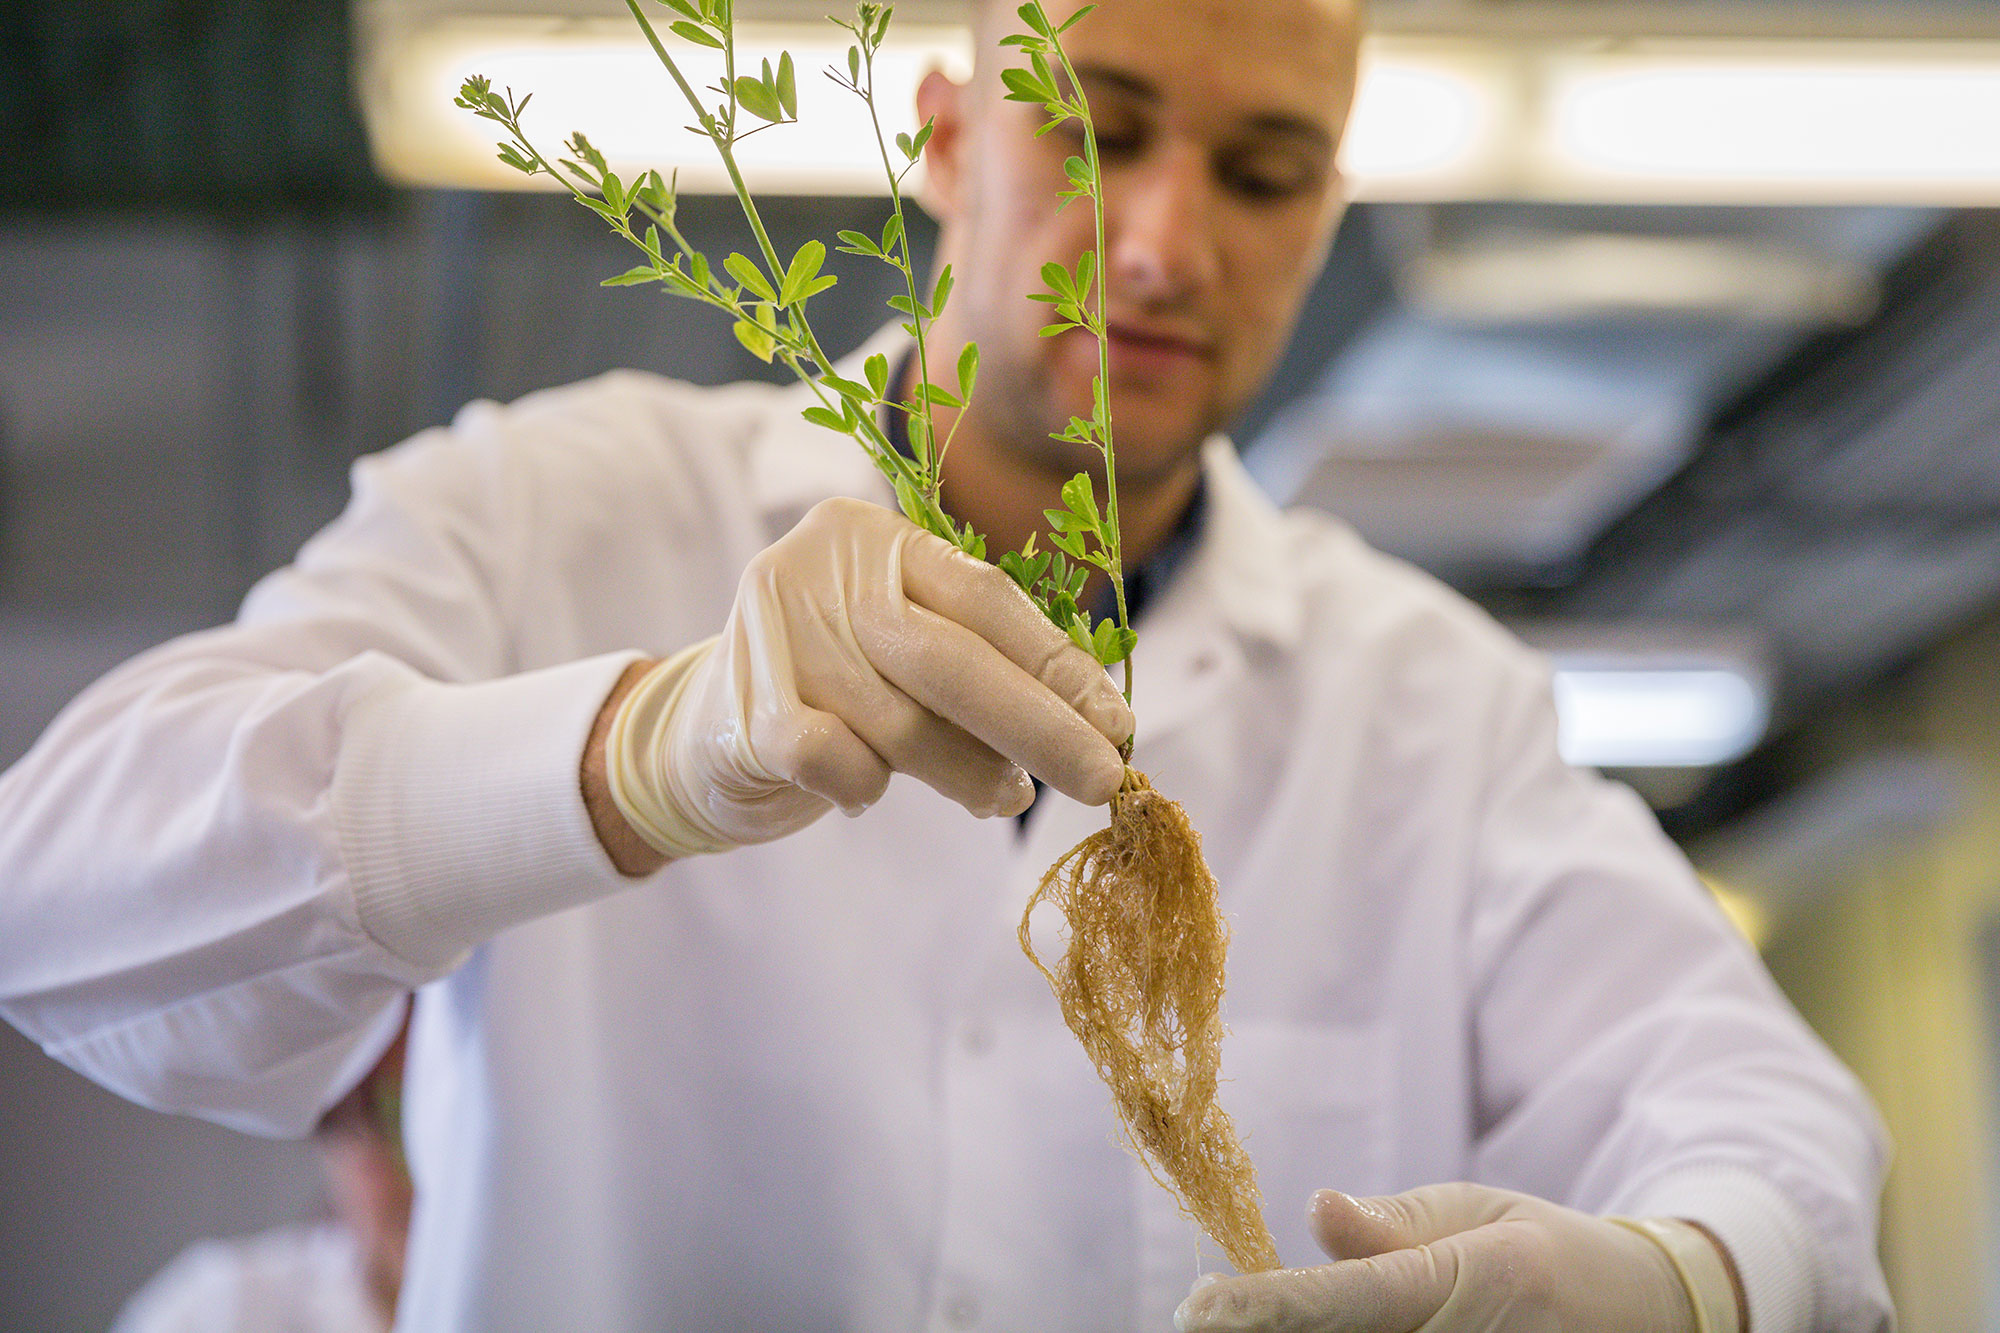 Researcher working with plant roots